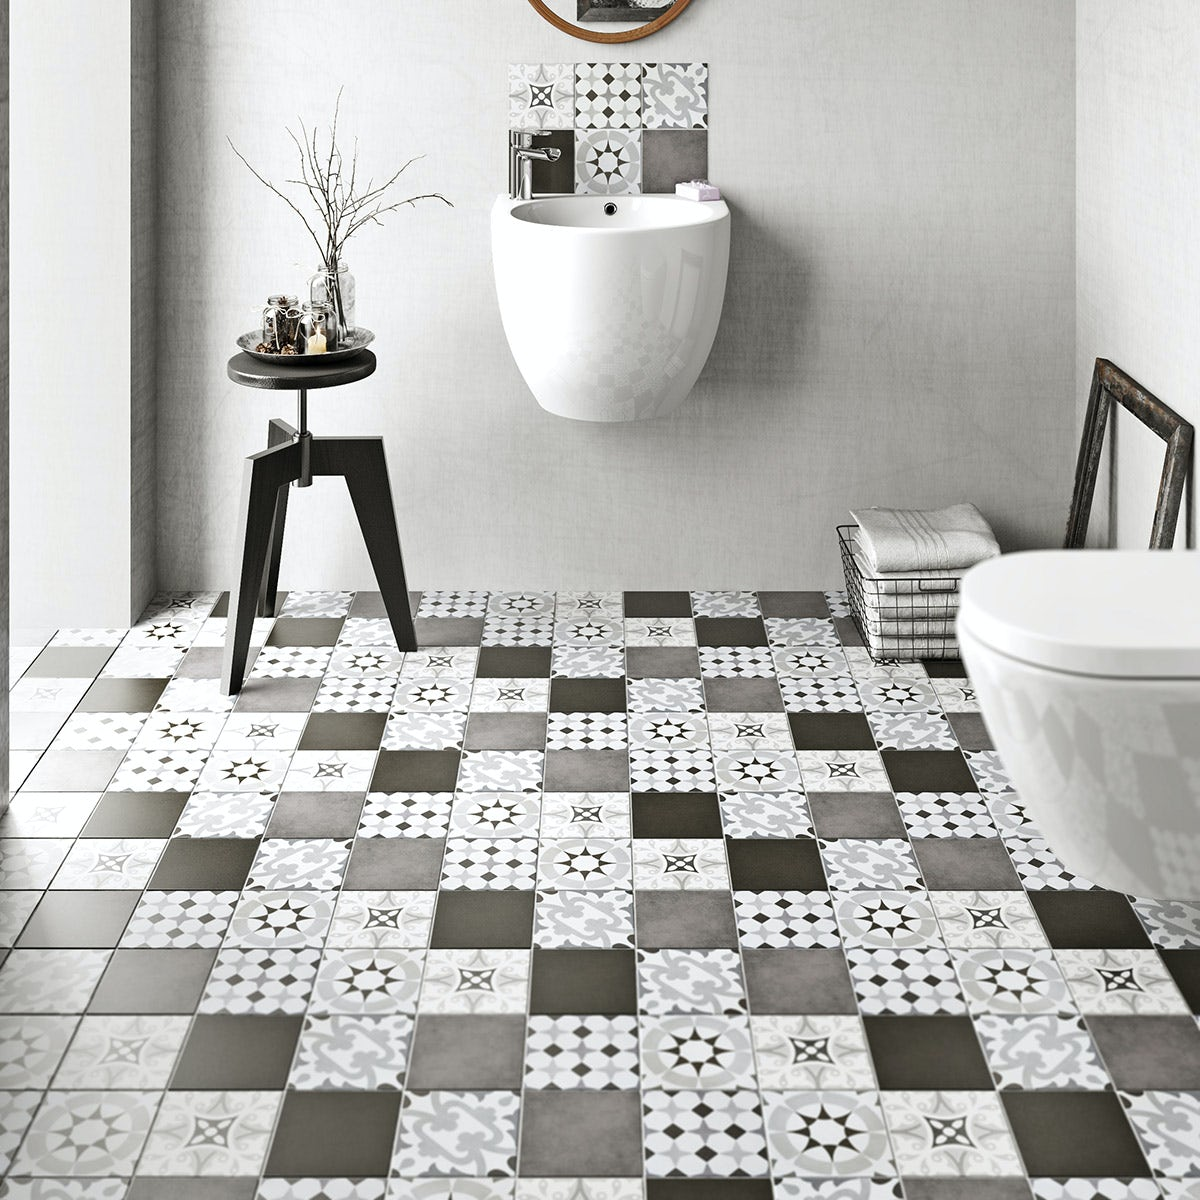 British Ceramic Tile Patchwork Pattern Grey Matt Tile